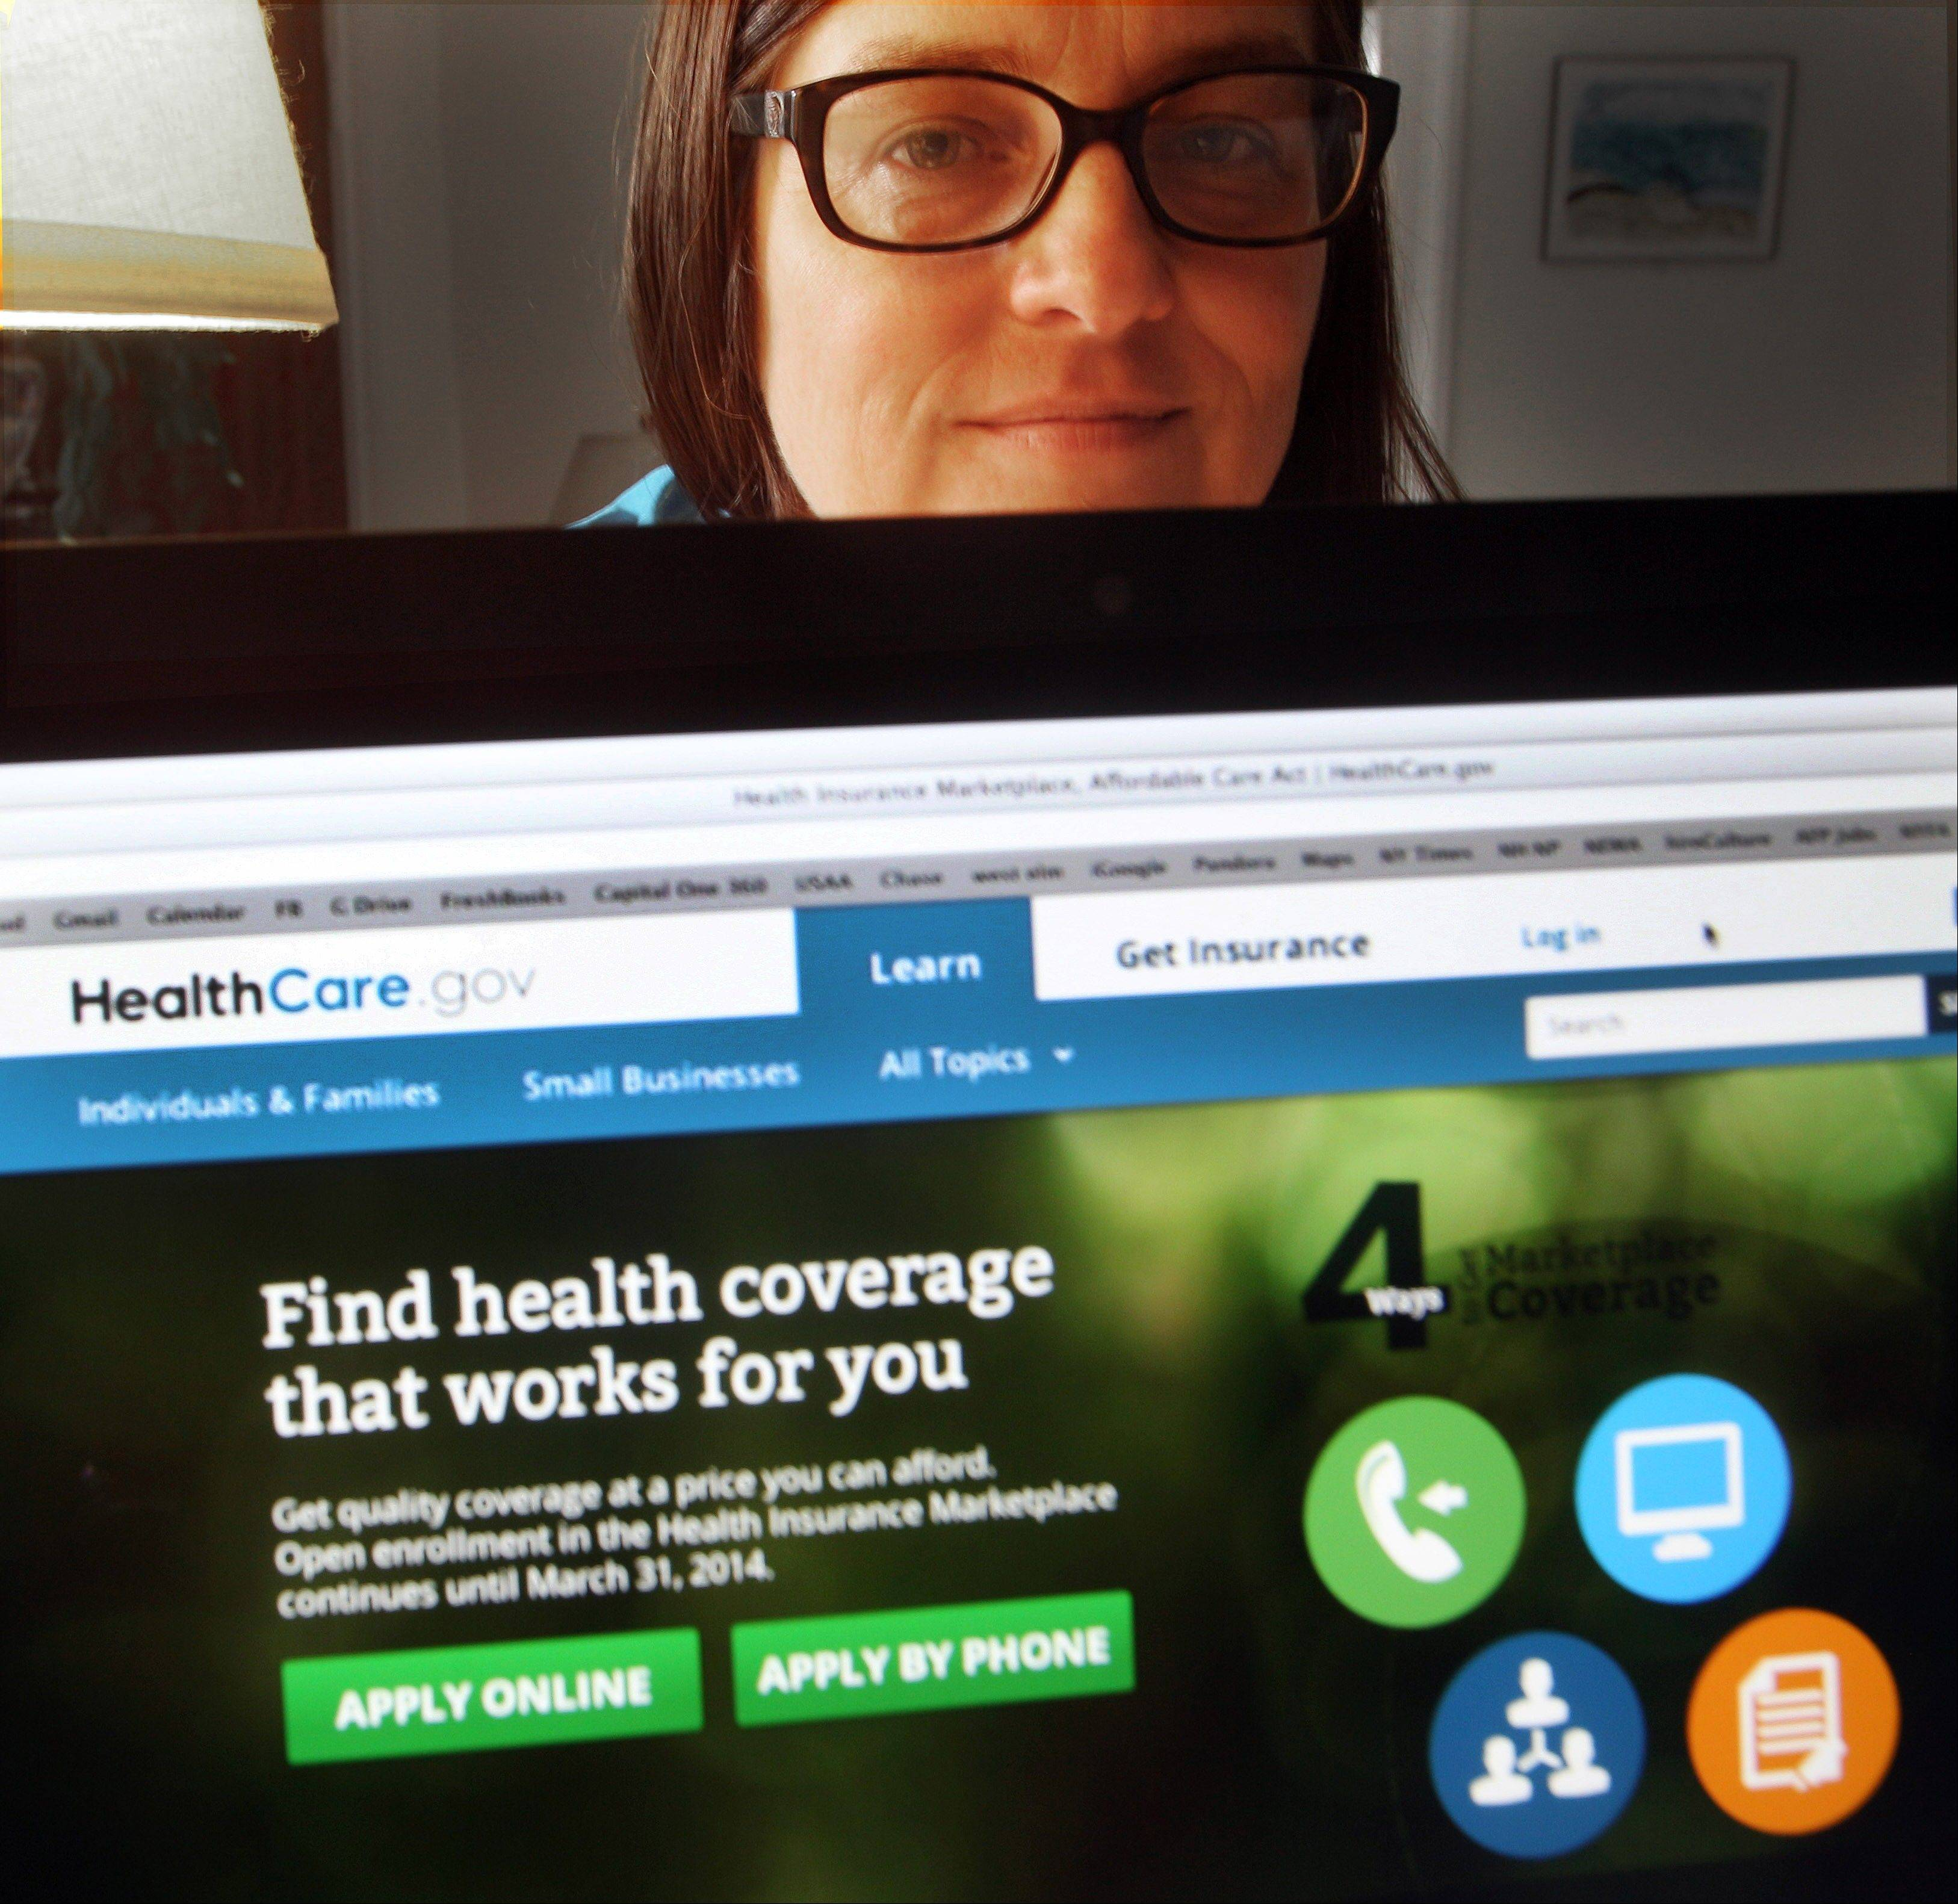 Not long after Deborah Lielasus enrolled, the Department of Health and Human Services asked her to appear both in a video describing her experience and in photographs that could replace the stock photo on the insurance enrollment site.